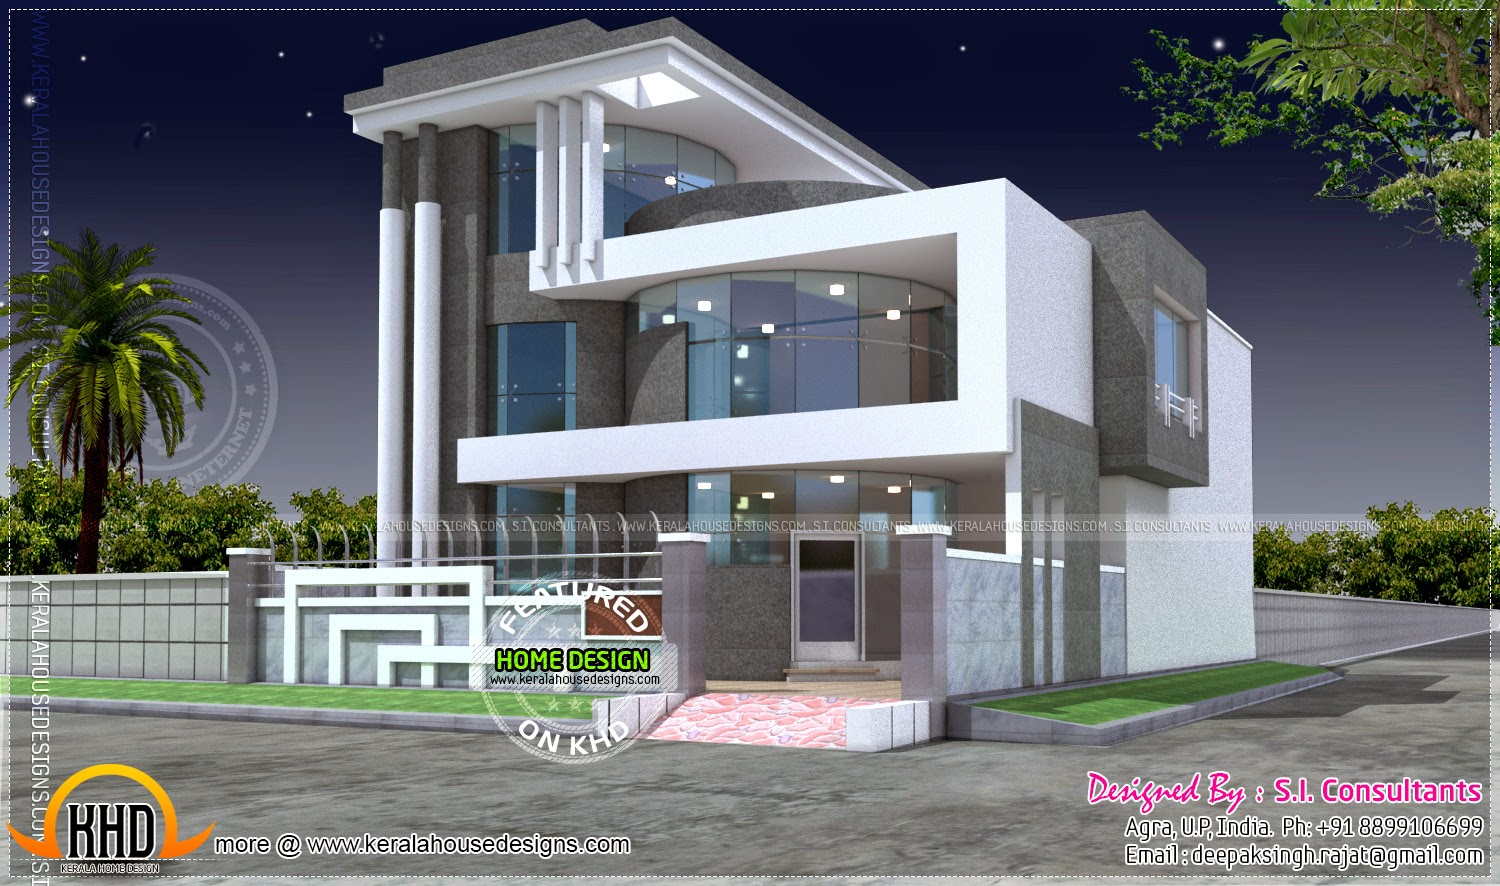 Unique luxury home design kerala home design and floor plans for Luxury home design plans